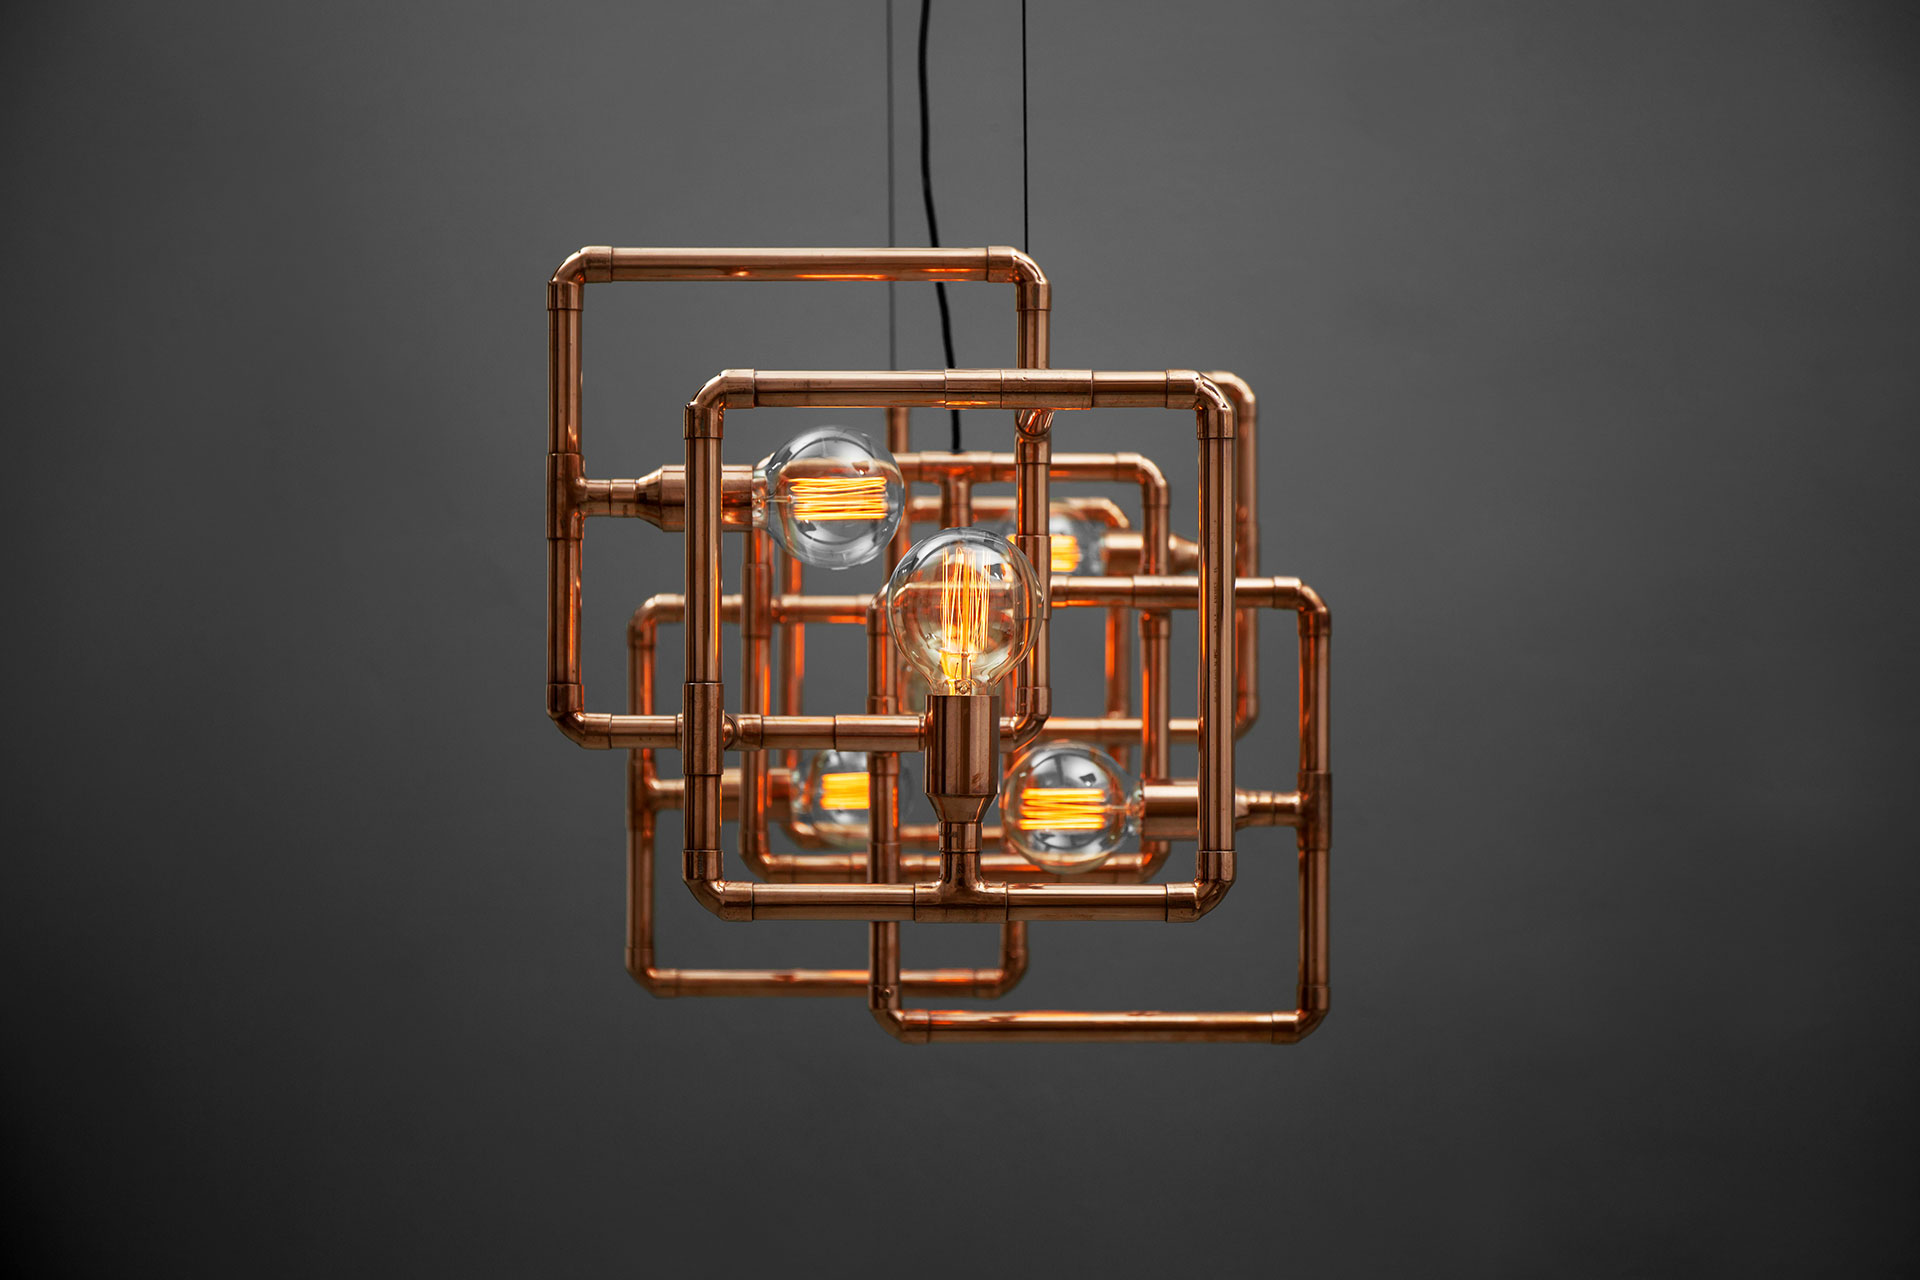 Dining table ceiling lamp in trendy copper inspired by geometric design